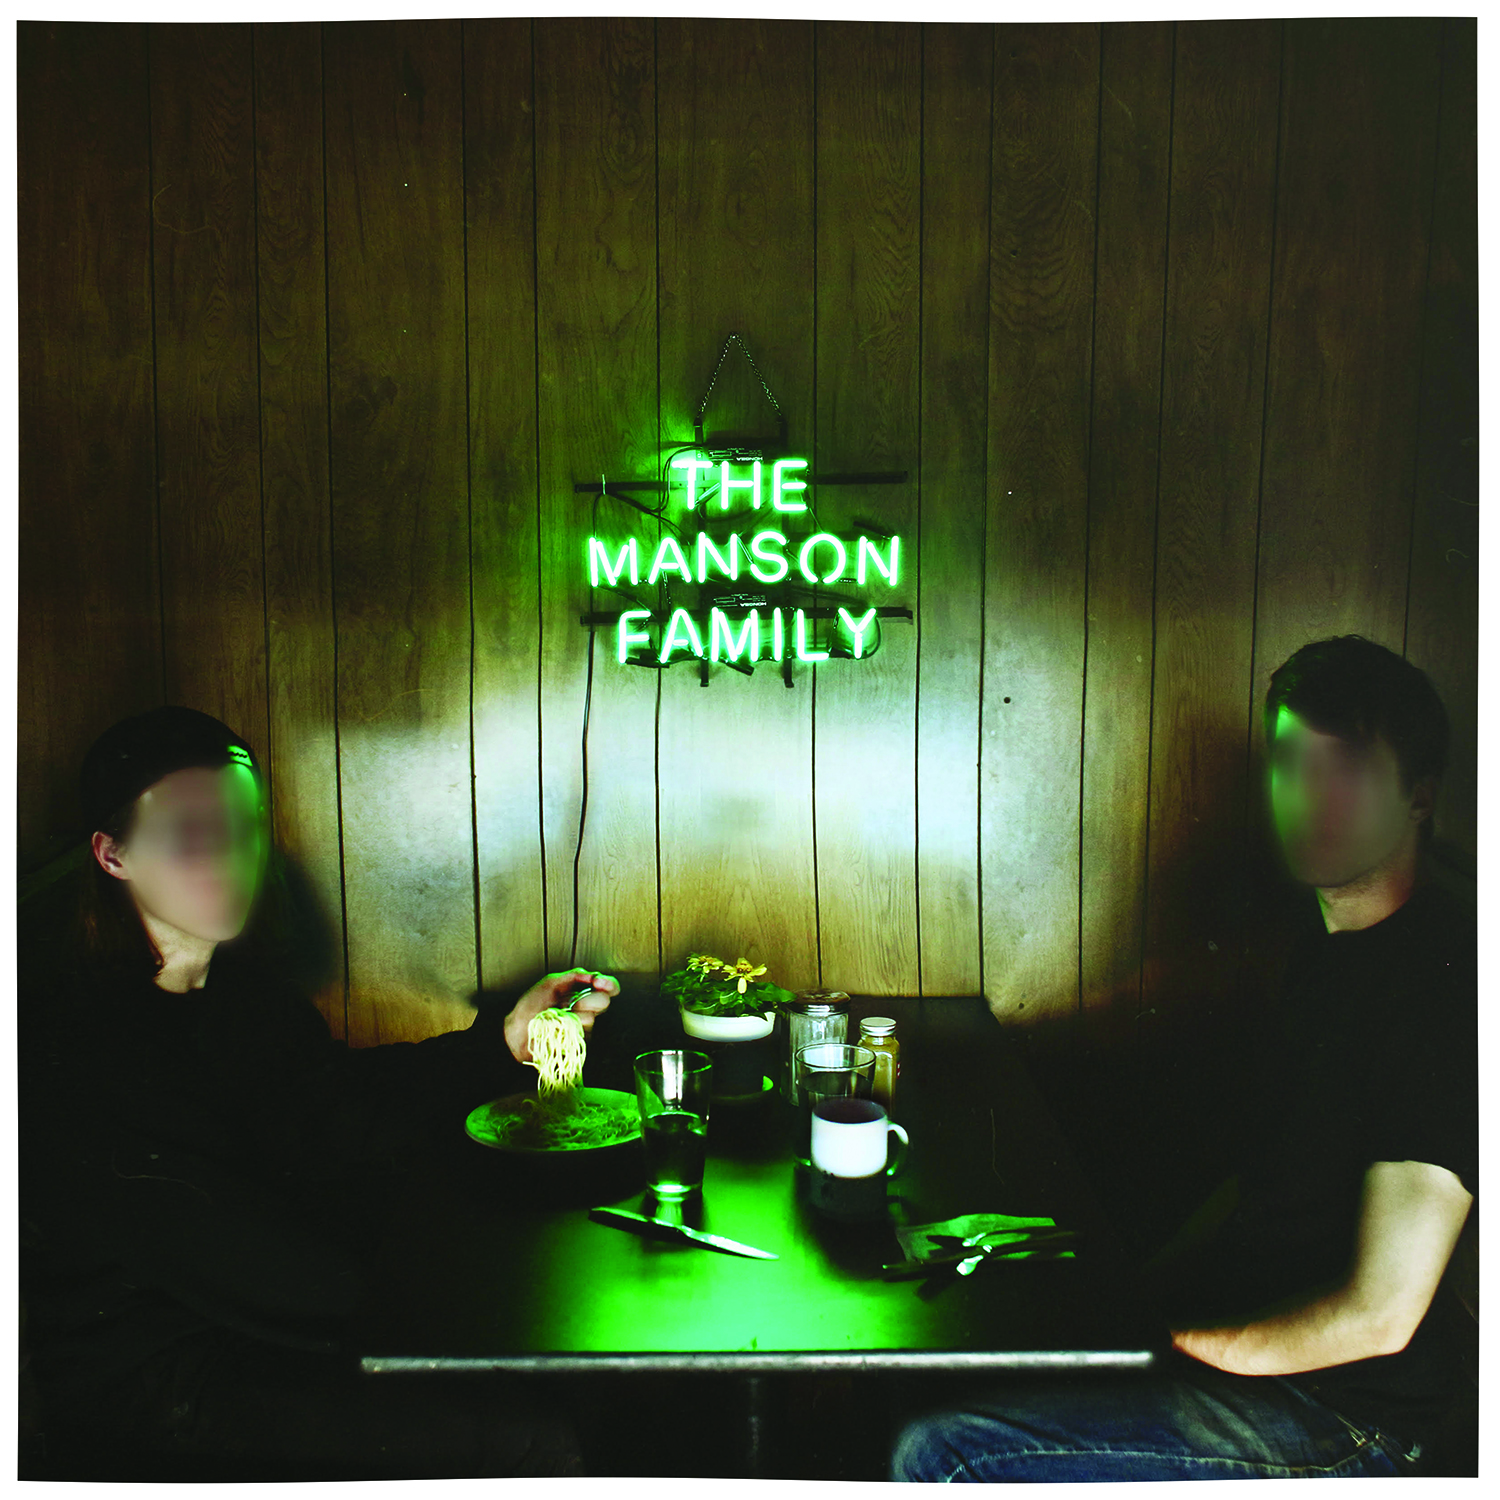 Heart Attack Man – The Manson Family Vinyl